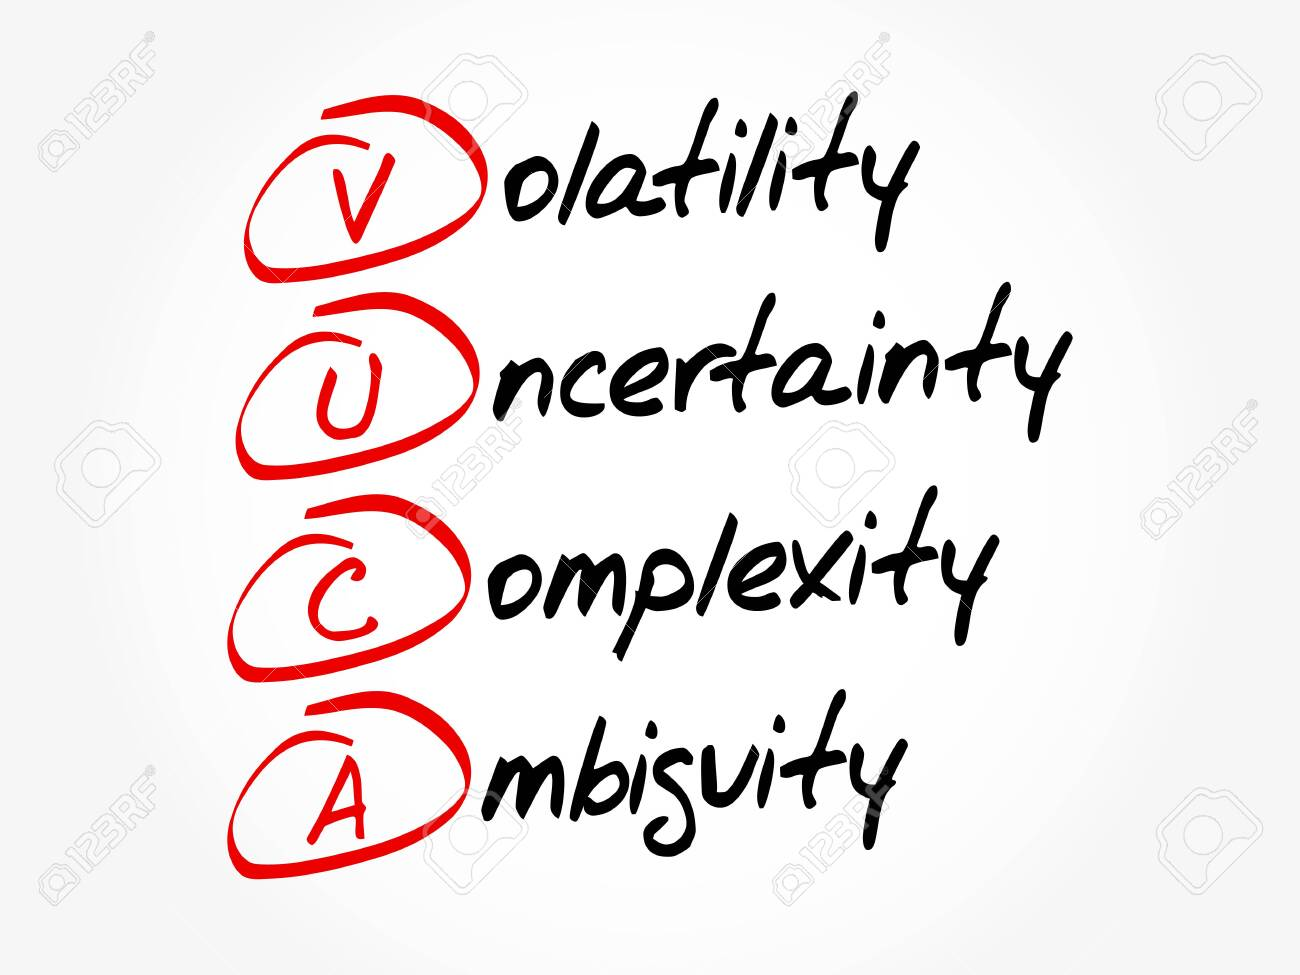 VUCA - Volatility, Uncertainty, Complexity, Ambiguity acronym, business concept background - 145602783